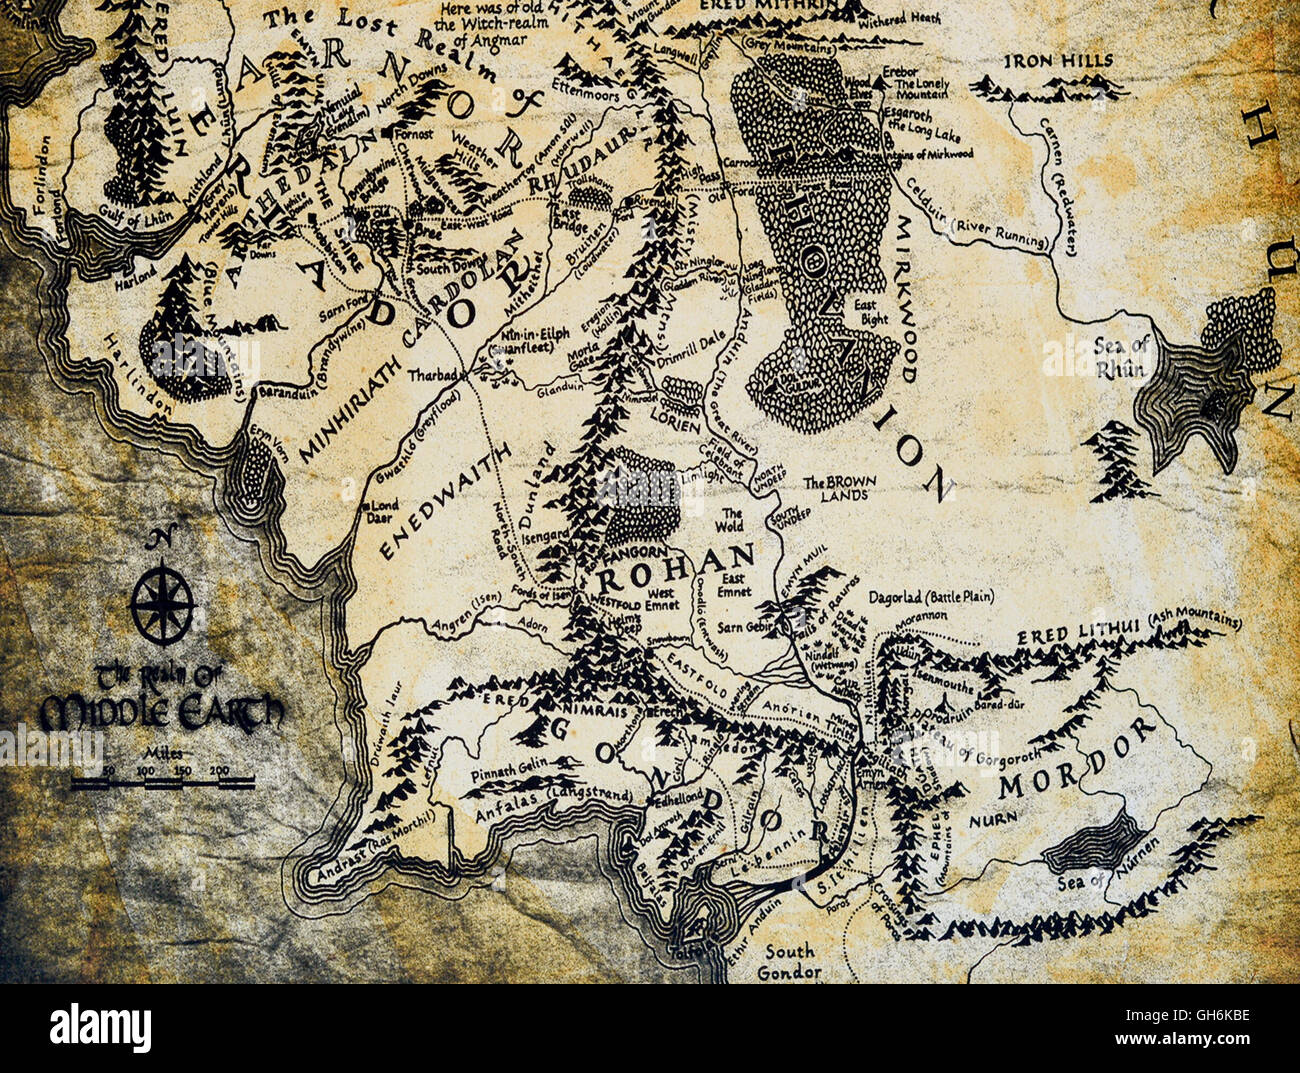 map of middle earth from the lord of the rings by jrr tolkien